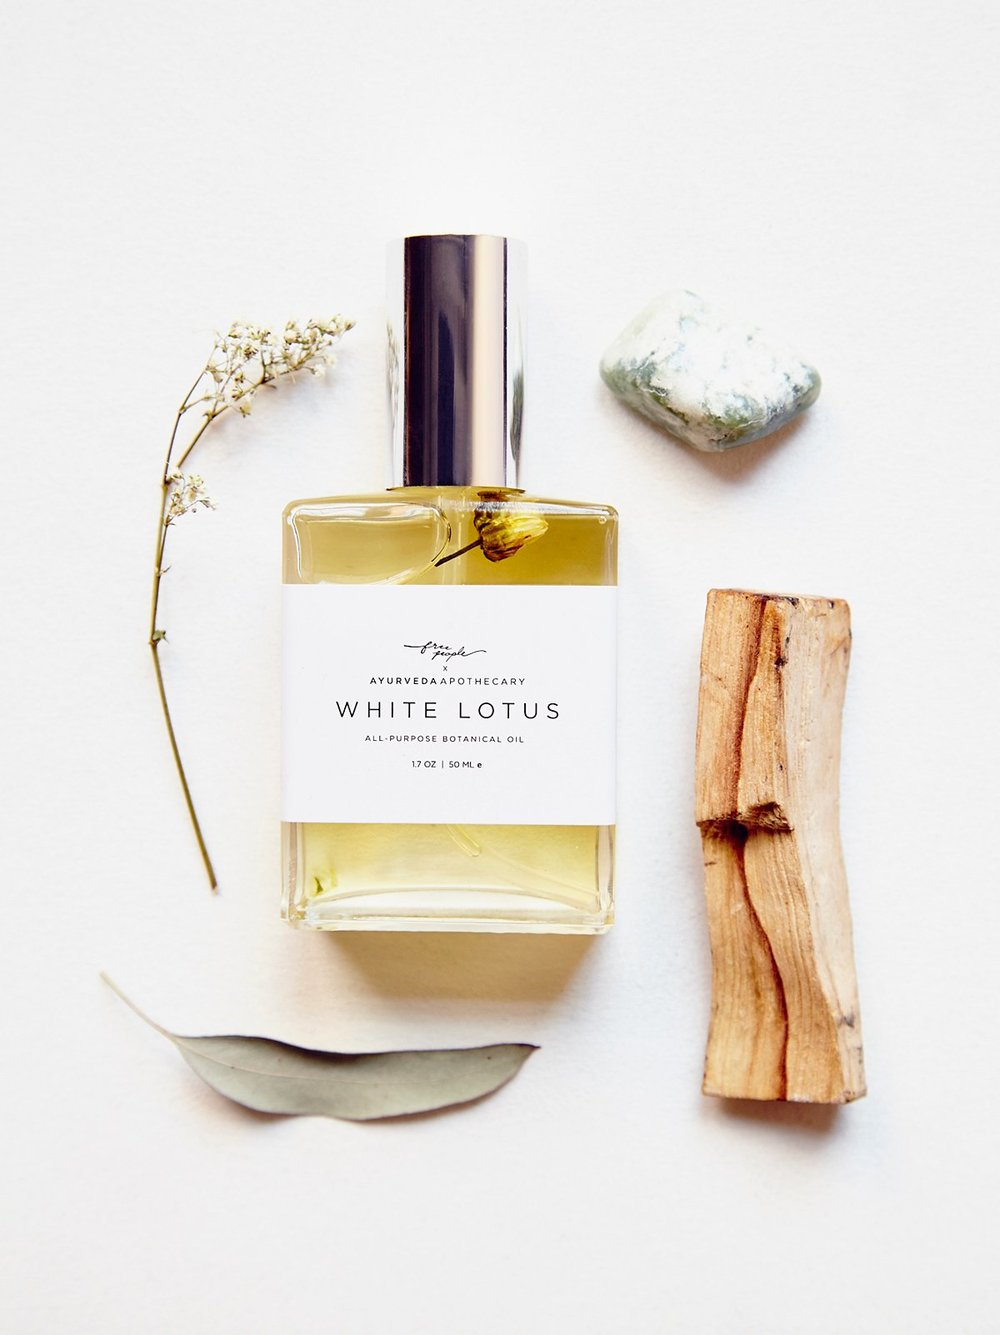 White Lotus All Purpose Botanical Oil $48.00